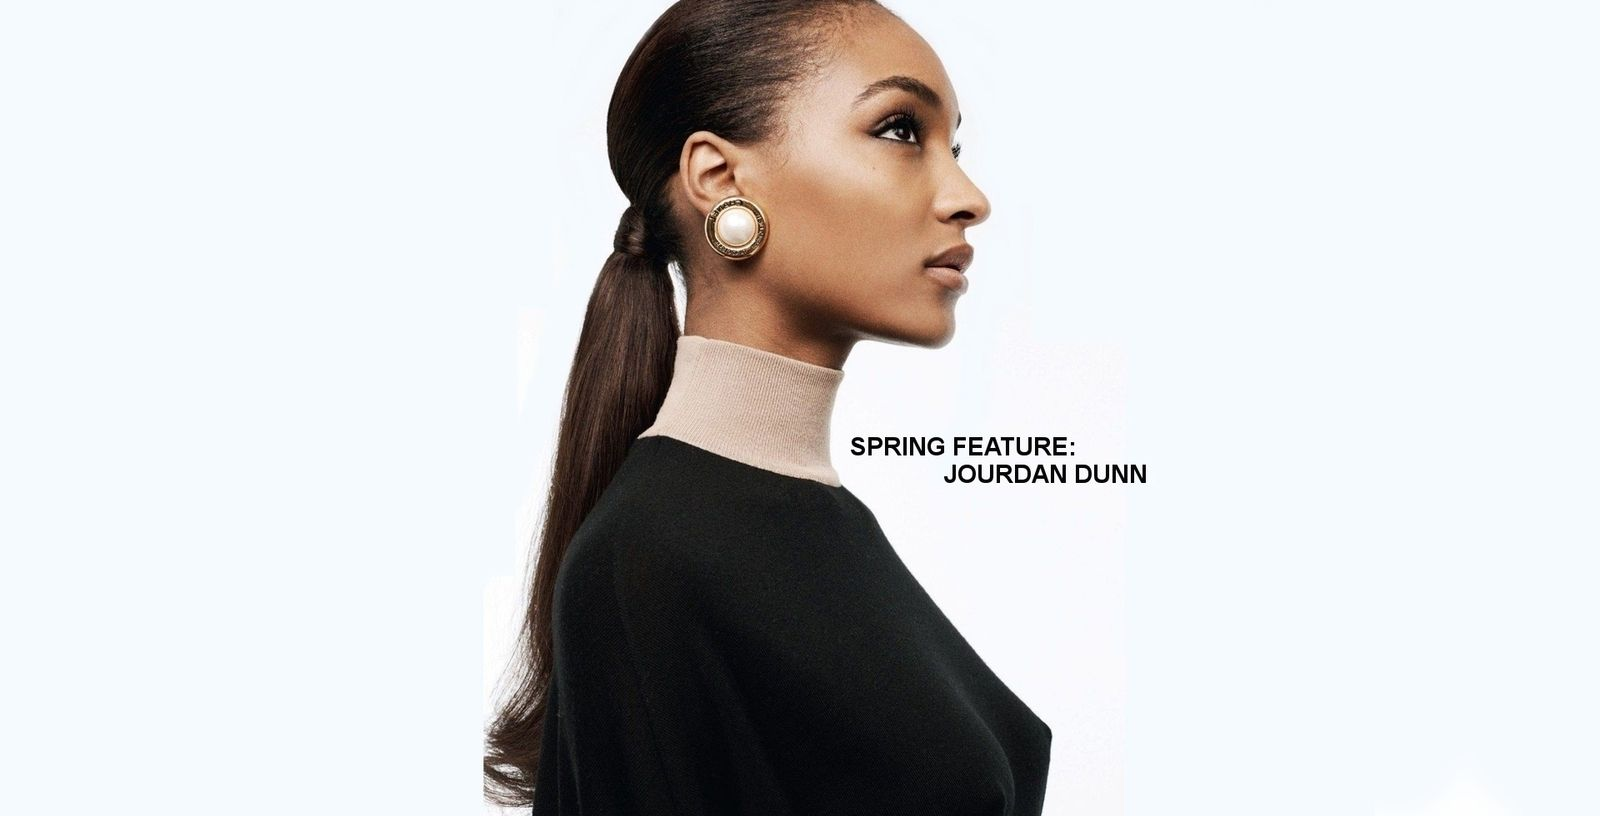 Spring Feature | Jourdan Dunn| Shopaholica.net #ReadNowOnline @ShopShopaholica #SpringFashion #ShopTrends